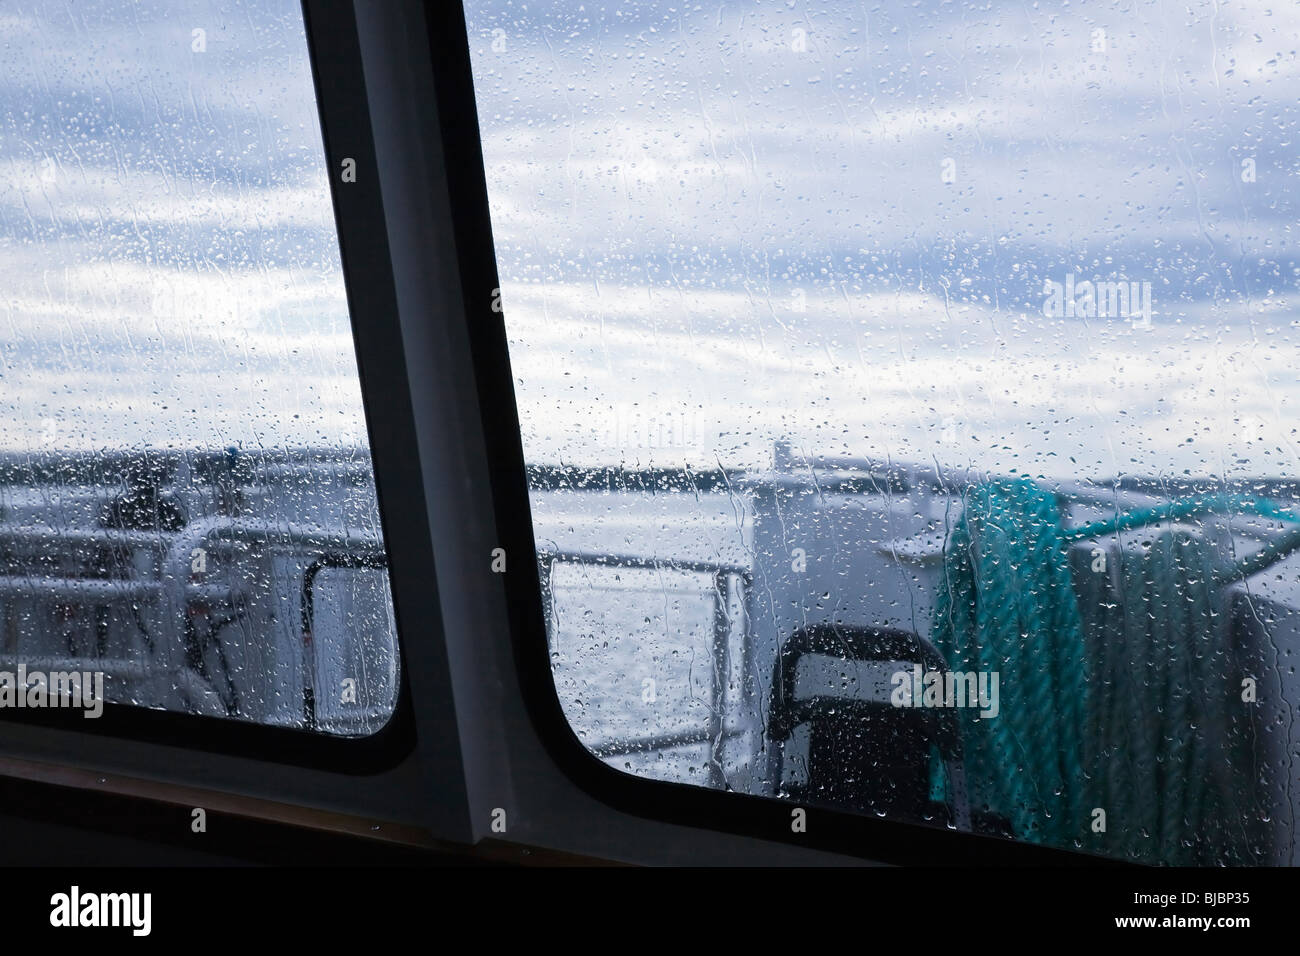 Through the bow window of a passenger boat on a rainy day. - Stock Image